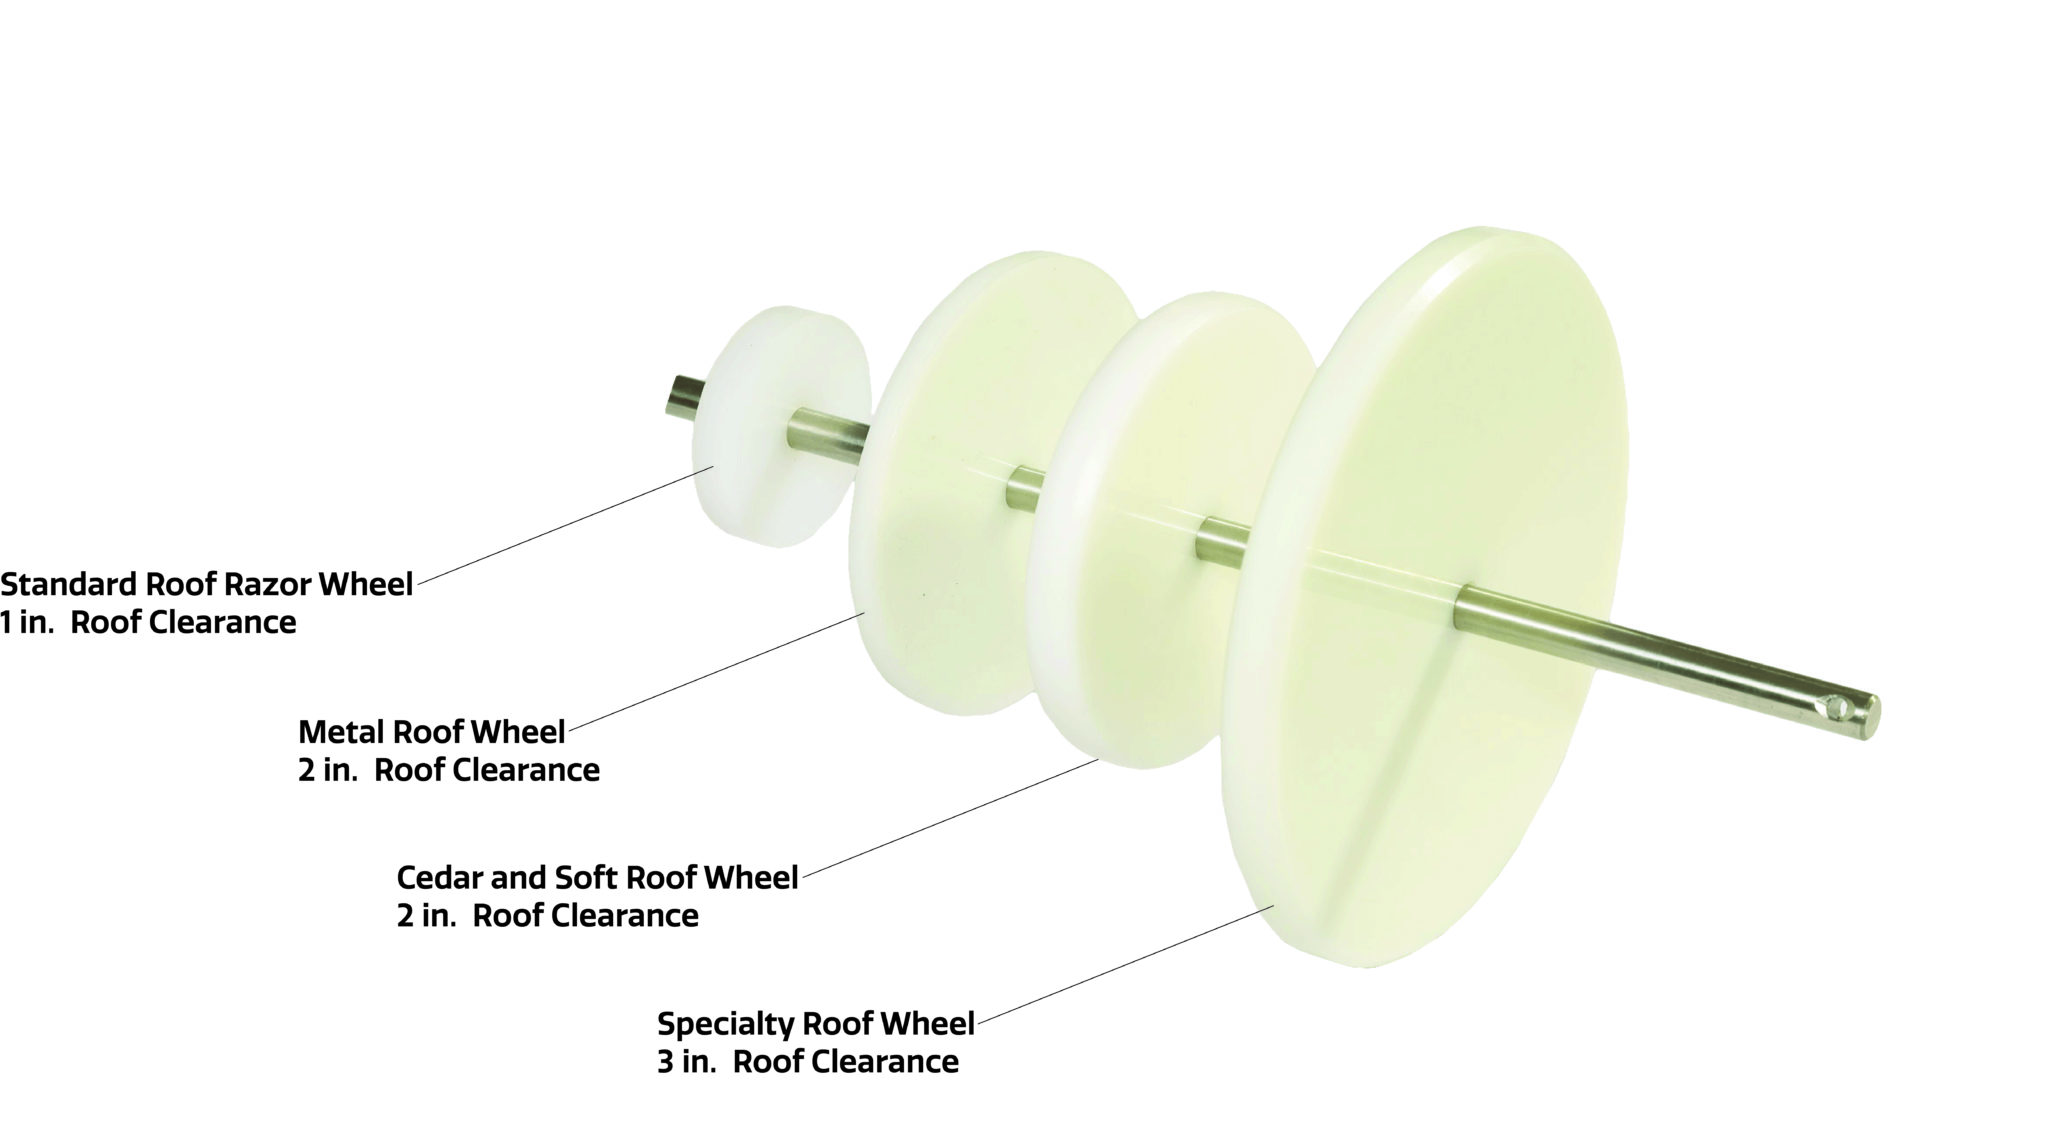 Different Roof Razor wheels side by side for comparison